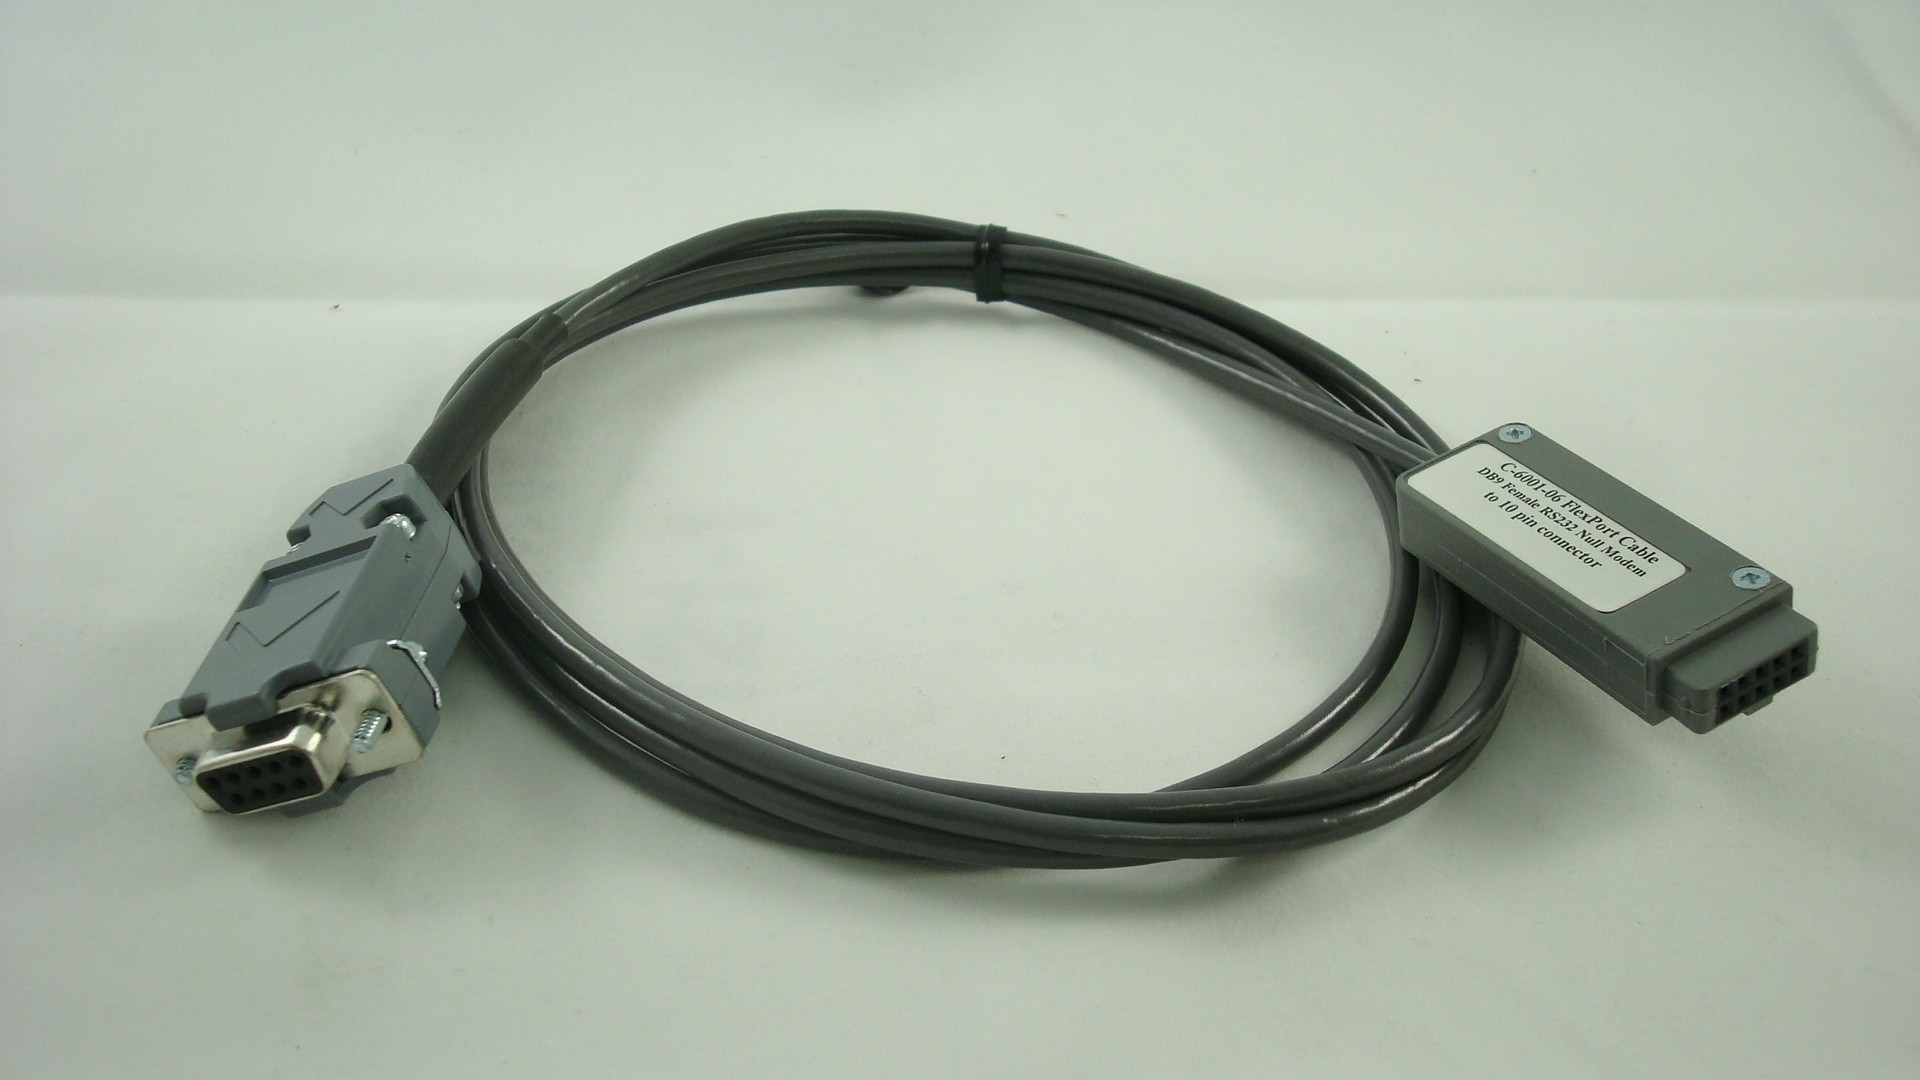 C-6010-06 Sony LY51 Display to 10 pin connector (6 ft)